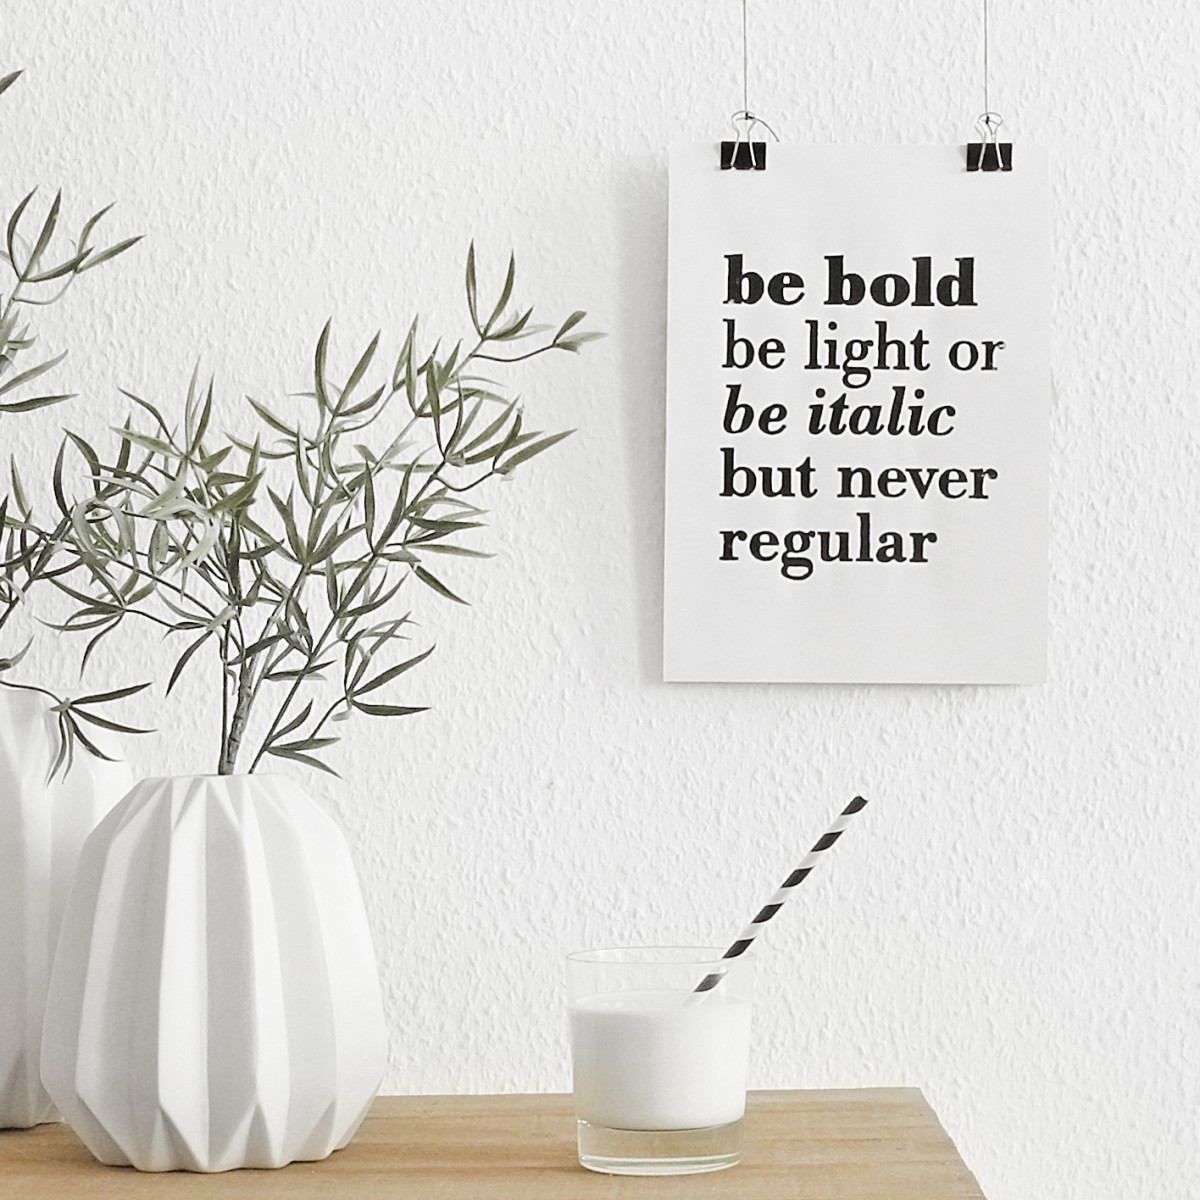 The True Type Linoldruck »be bold, be light or be italic but never regular«, ungerahmt (DIN A4), Poster, Print, Typografie, Design